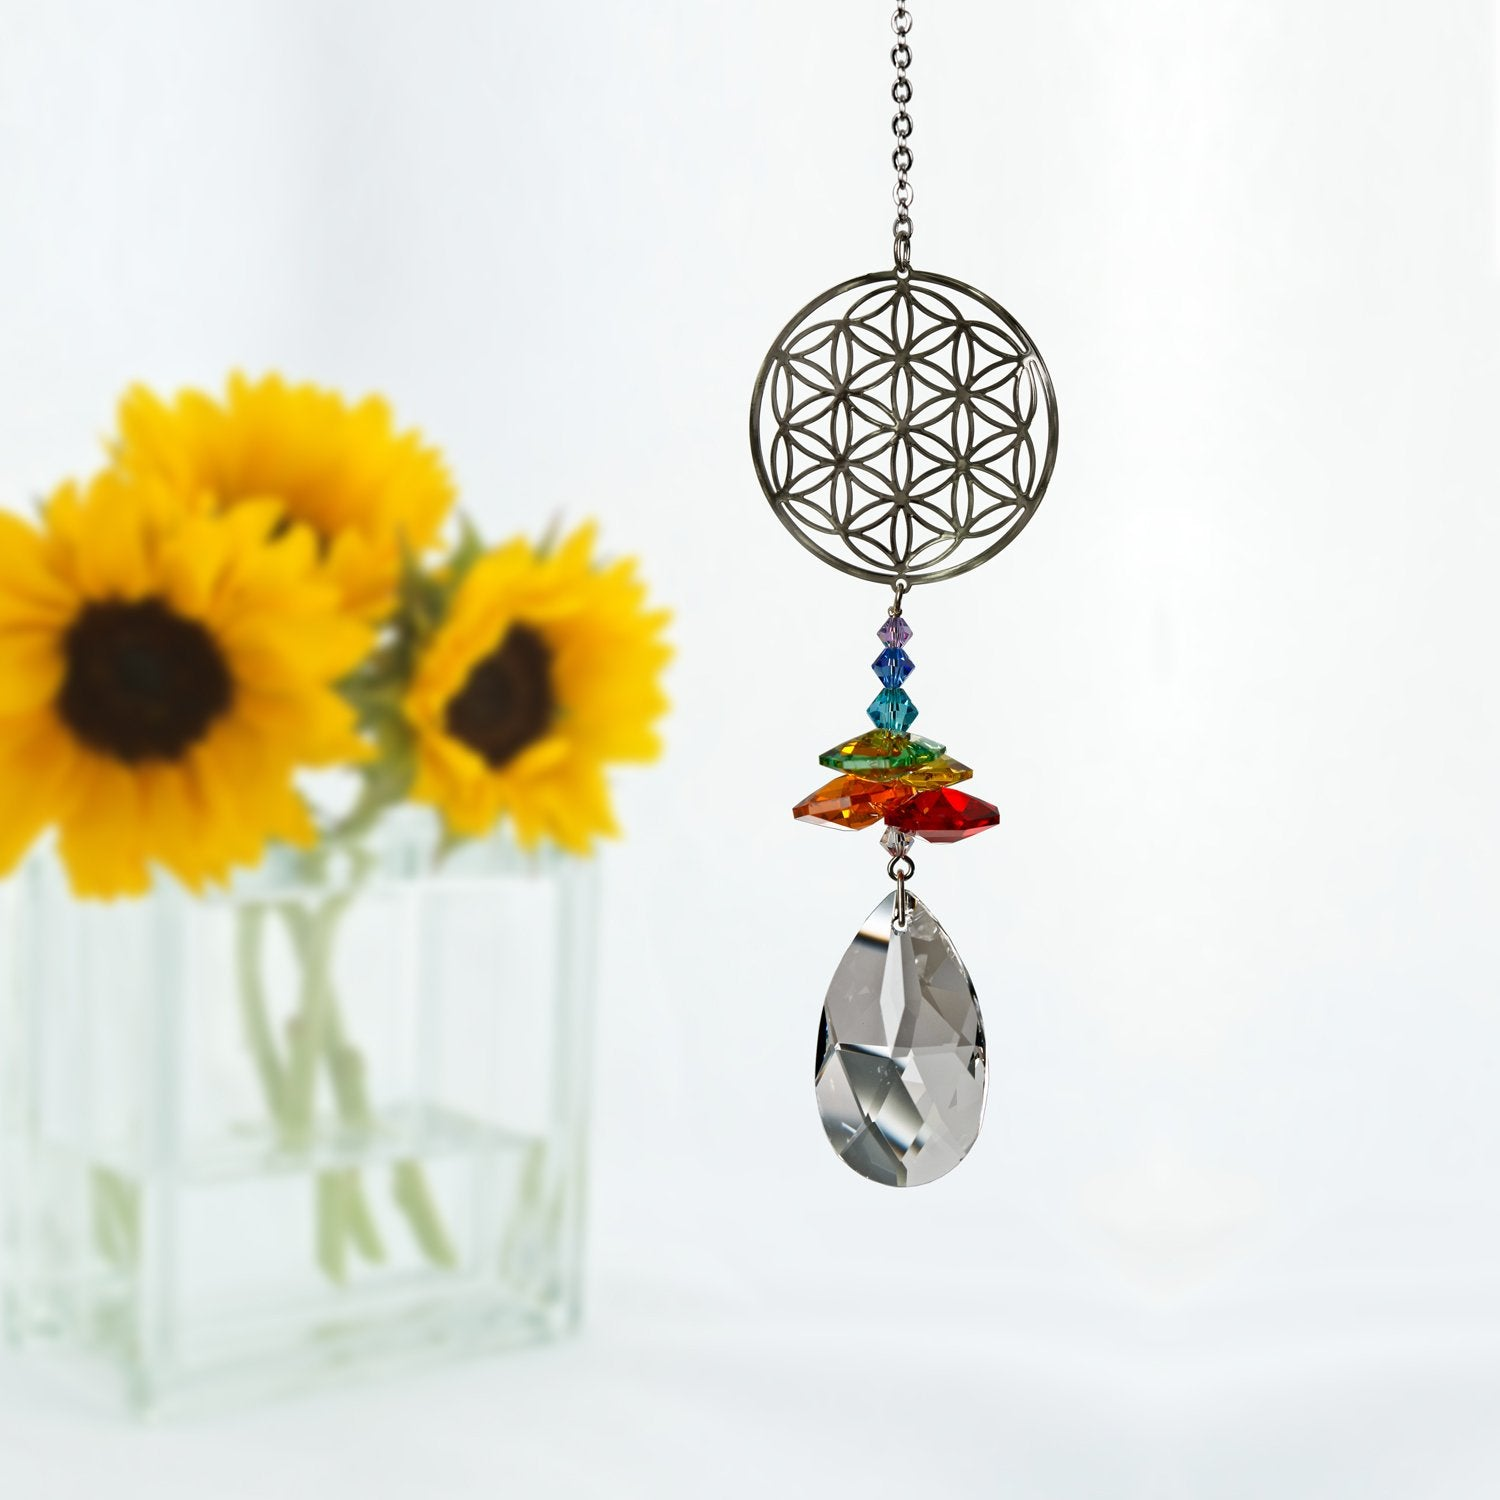 Crystal Fantasy Suncatcher - Flower of Life lifestyle image